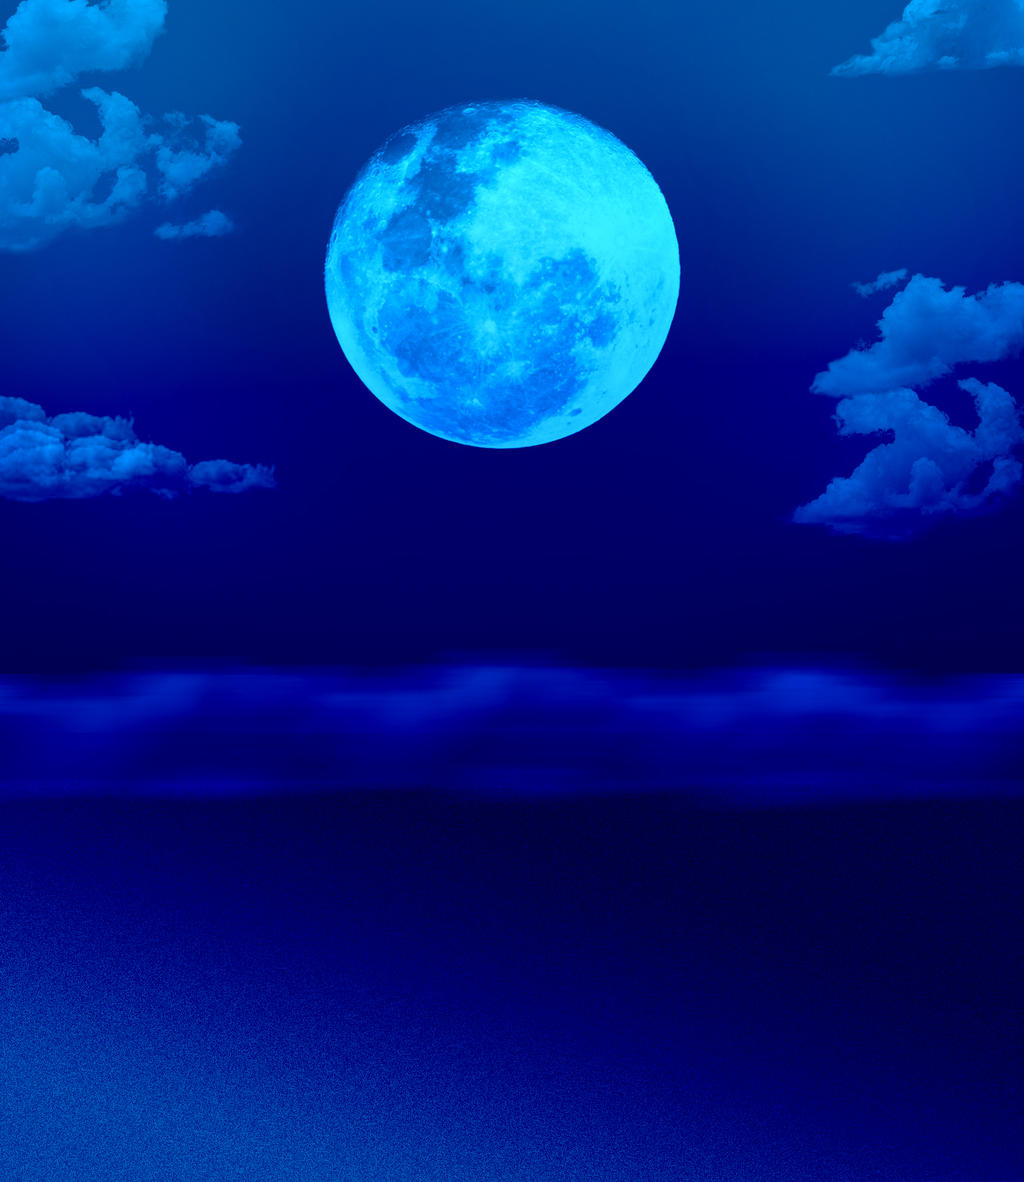 blue moon by simplybackgrounds on deviantart